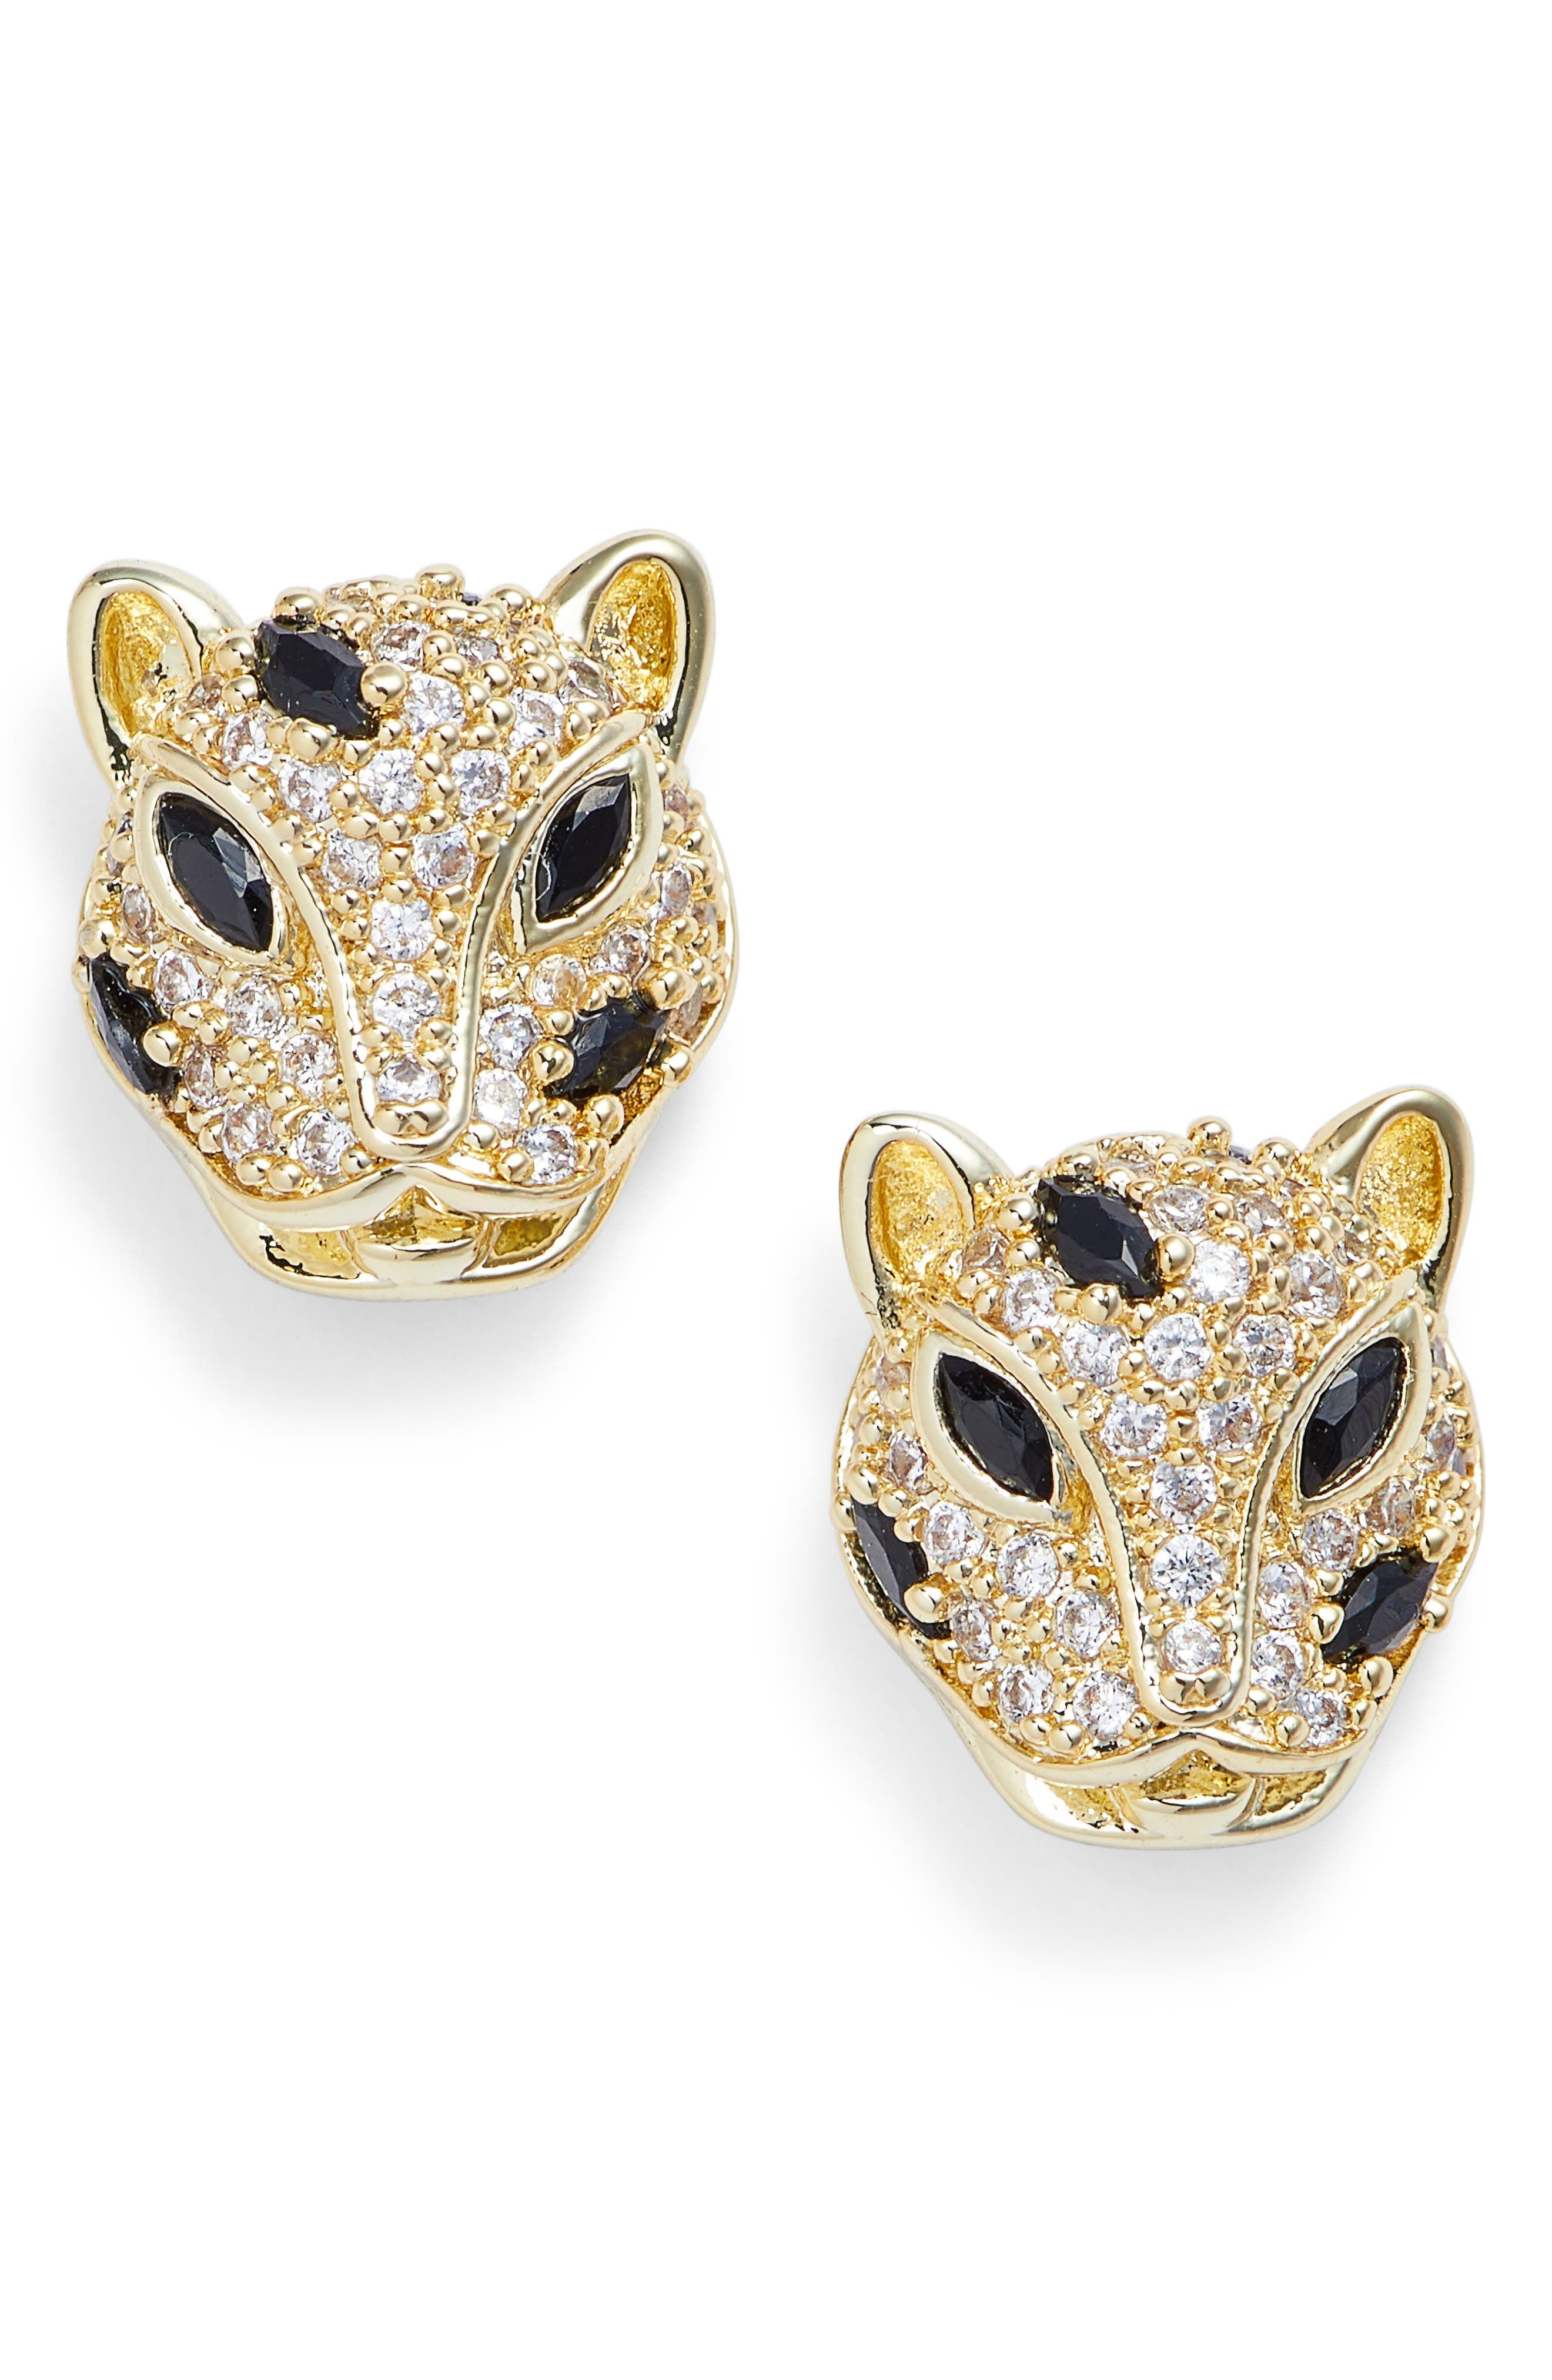 Baby Jaguar Stud Earrings,                             Main thumbnail 1, color,                             GOLD AND WHITE CZ